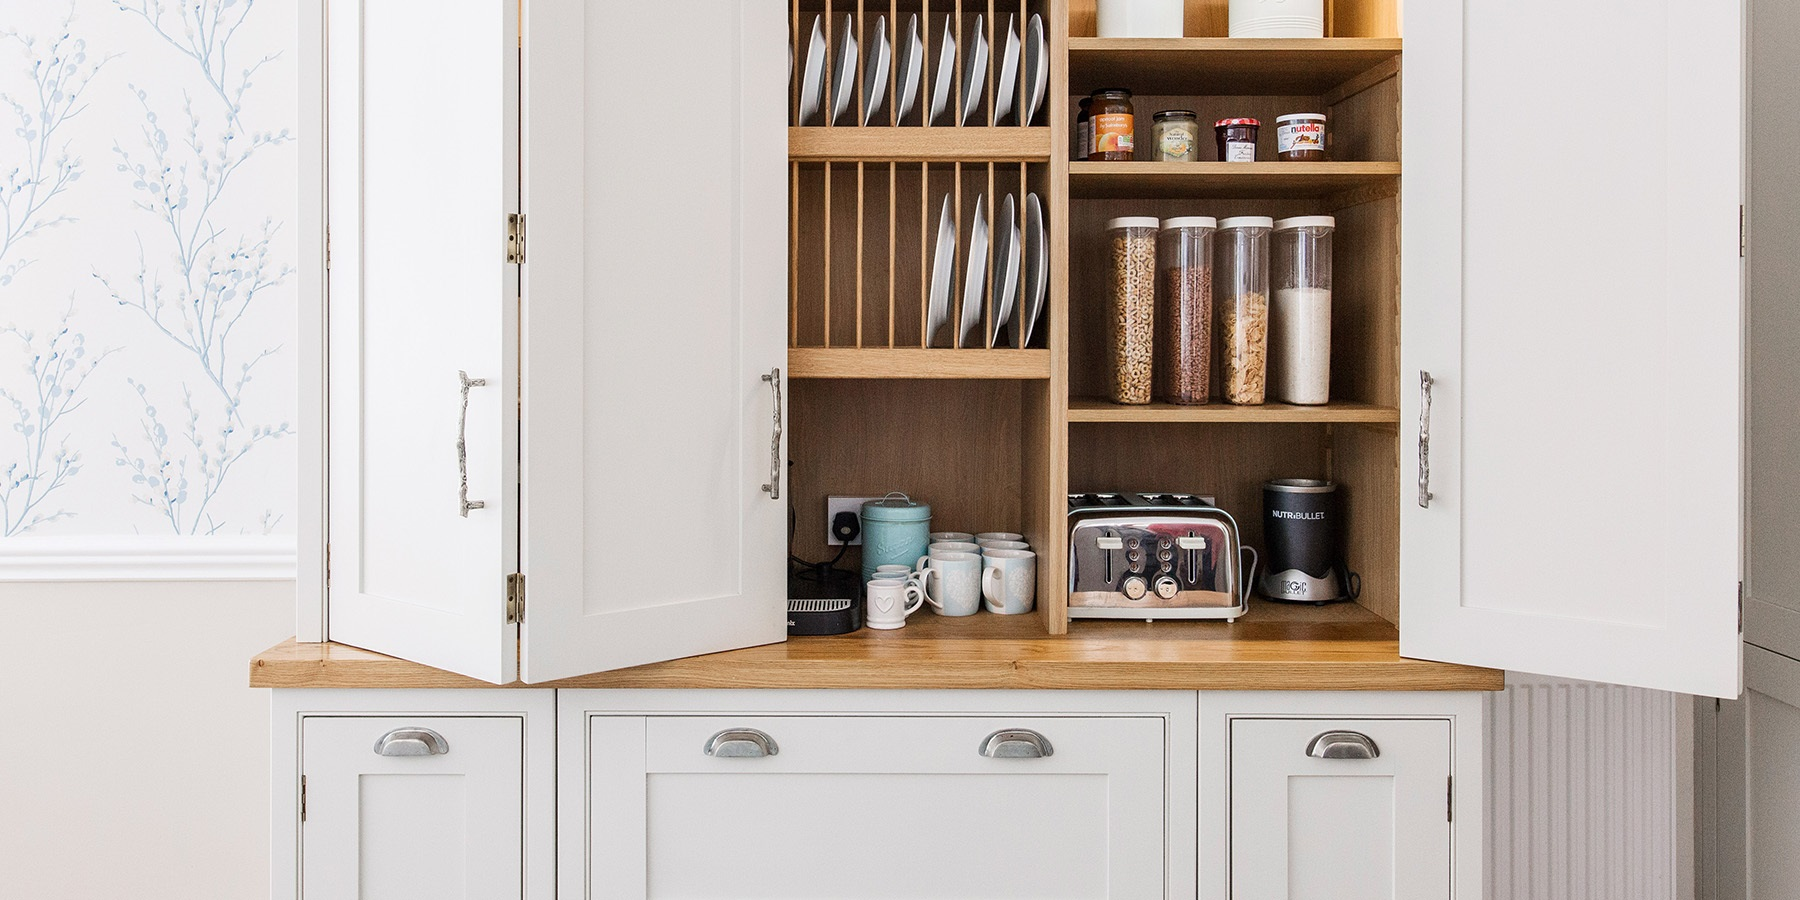 Burlanes Interiors - A coastal, handmade country kitchen